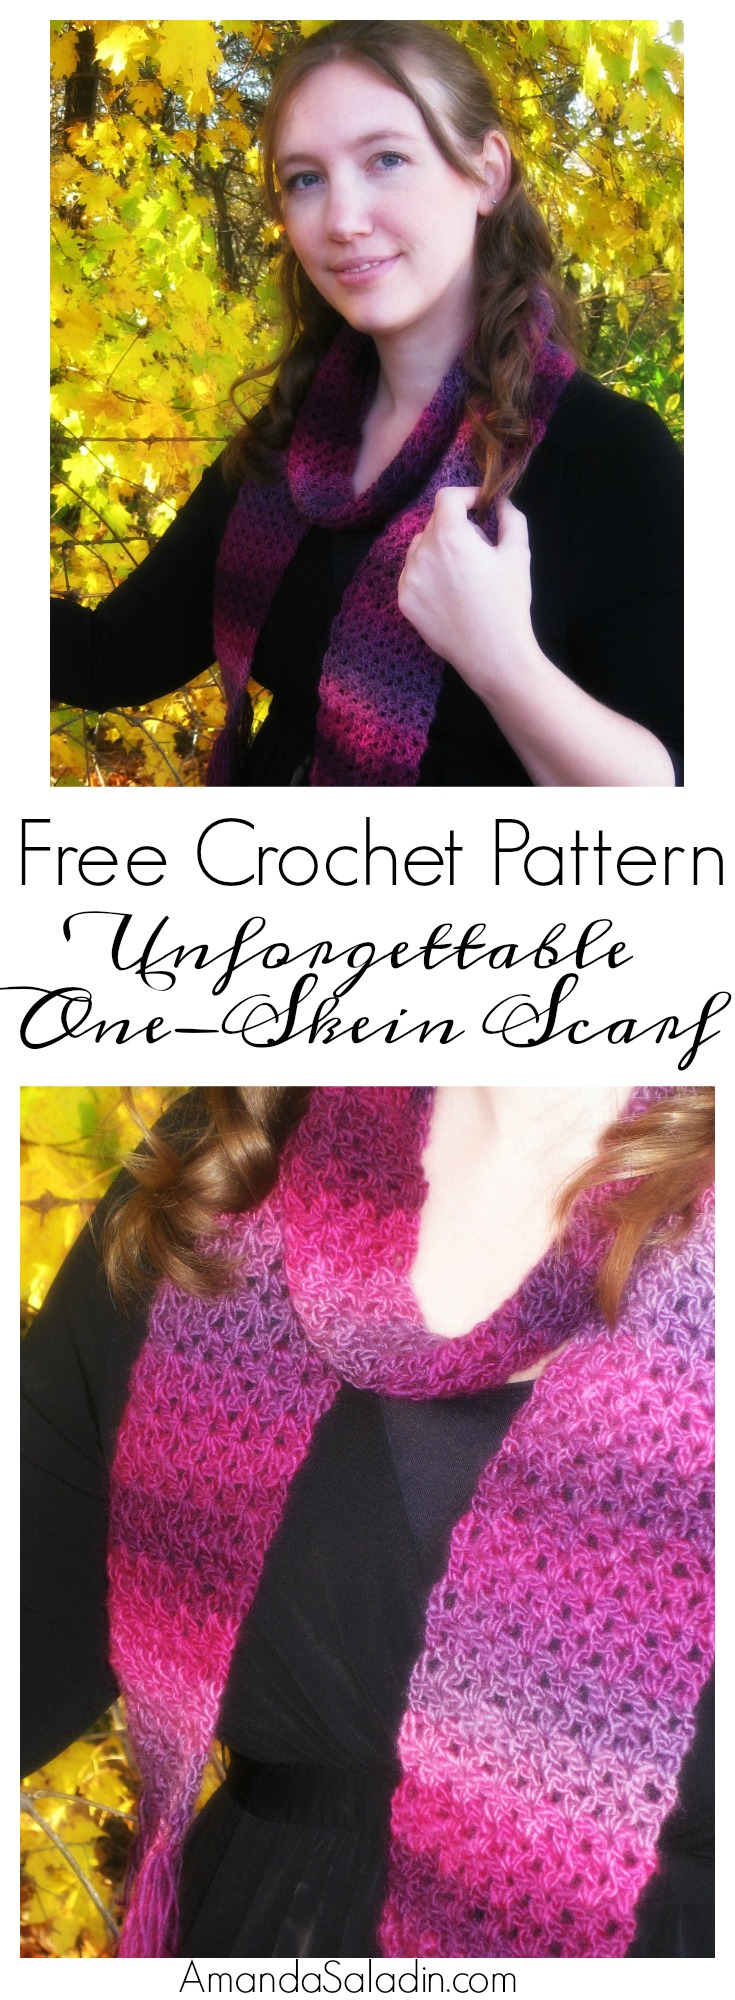 Over 100 projects on Ravelry for this FREE crochet pattern! I have to make this!